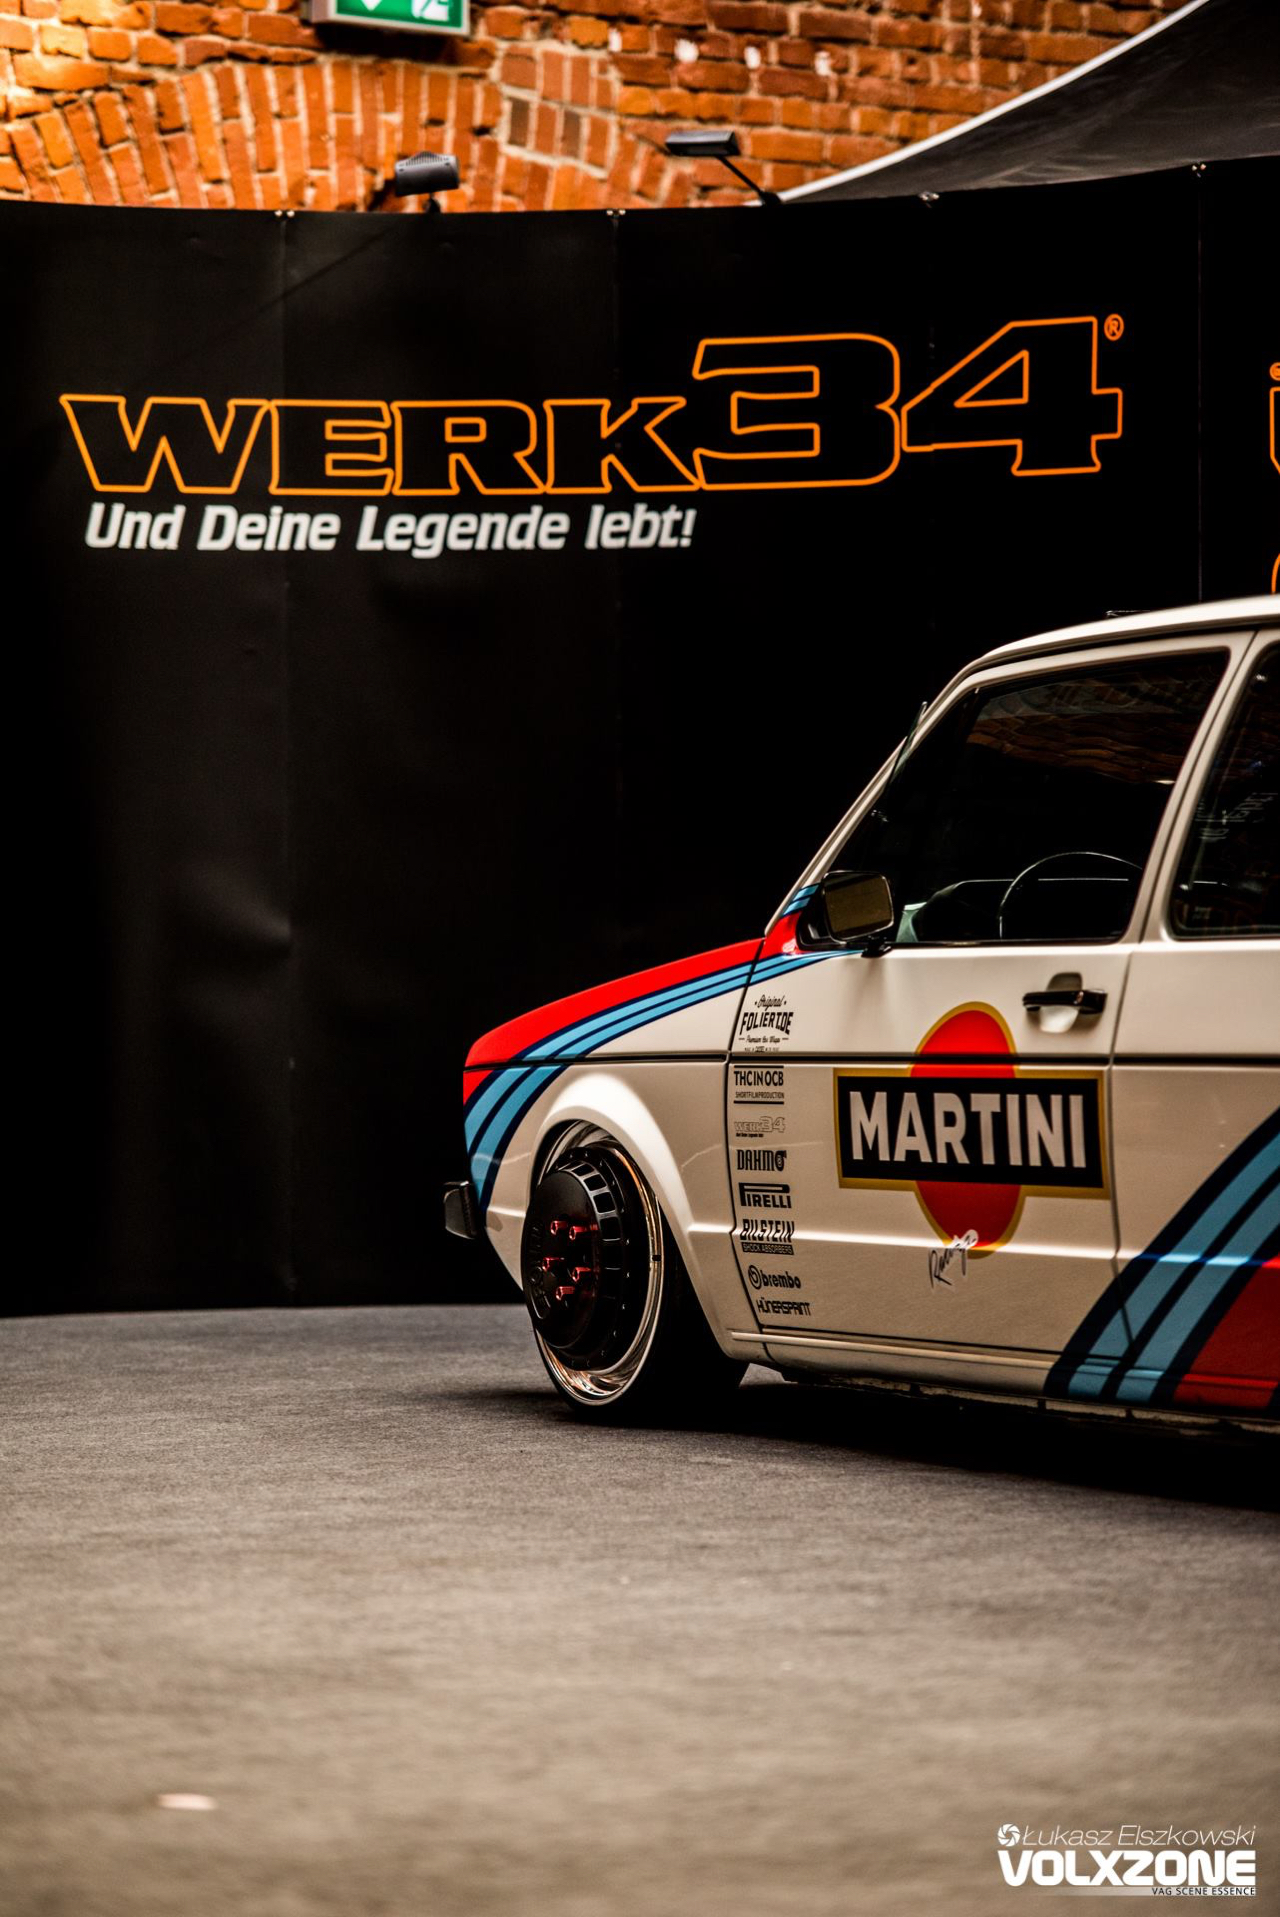 VW Golf 1 : Un p'tit coup de Martini ? 3